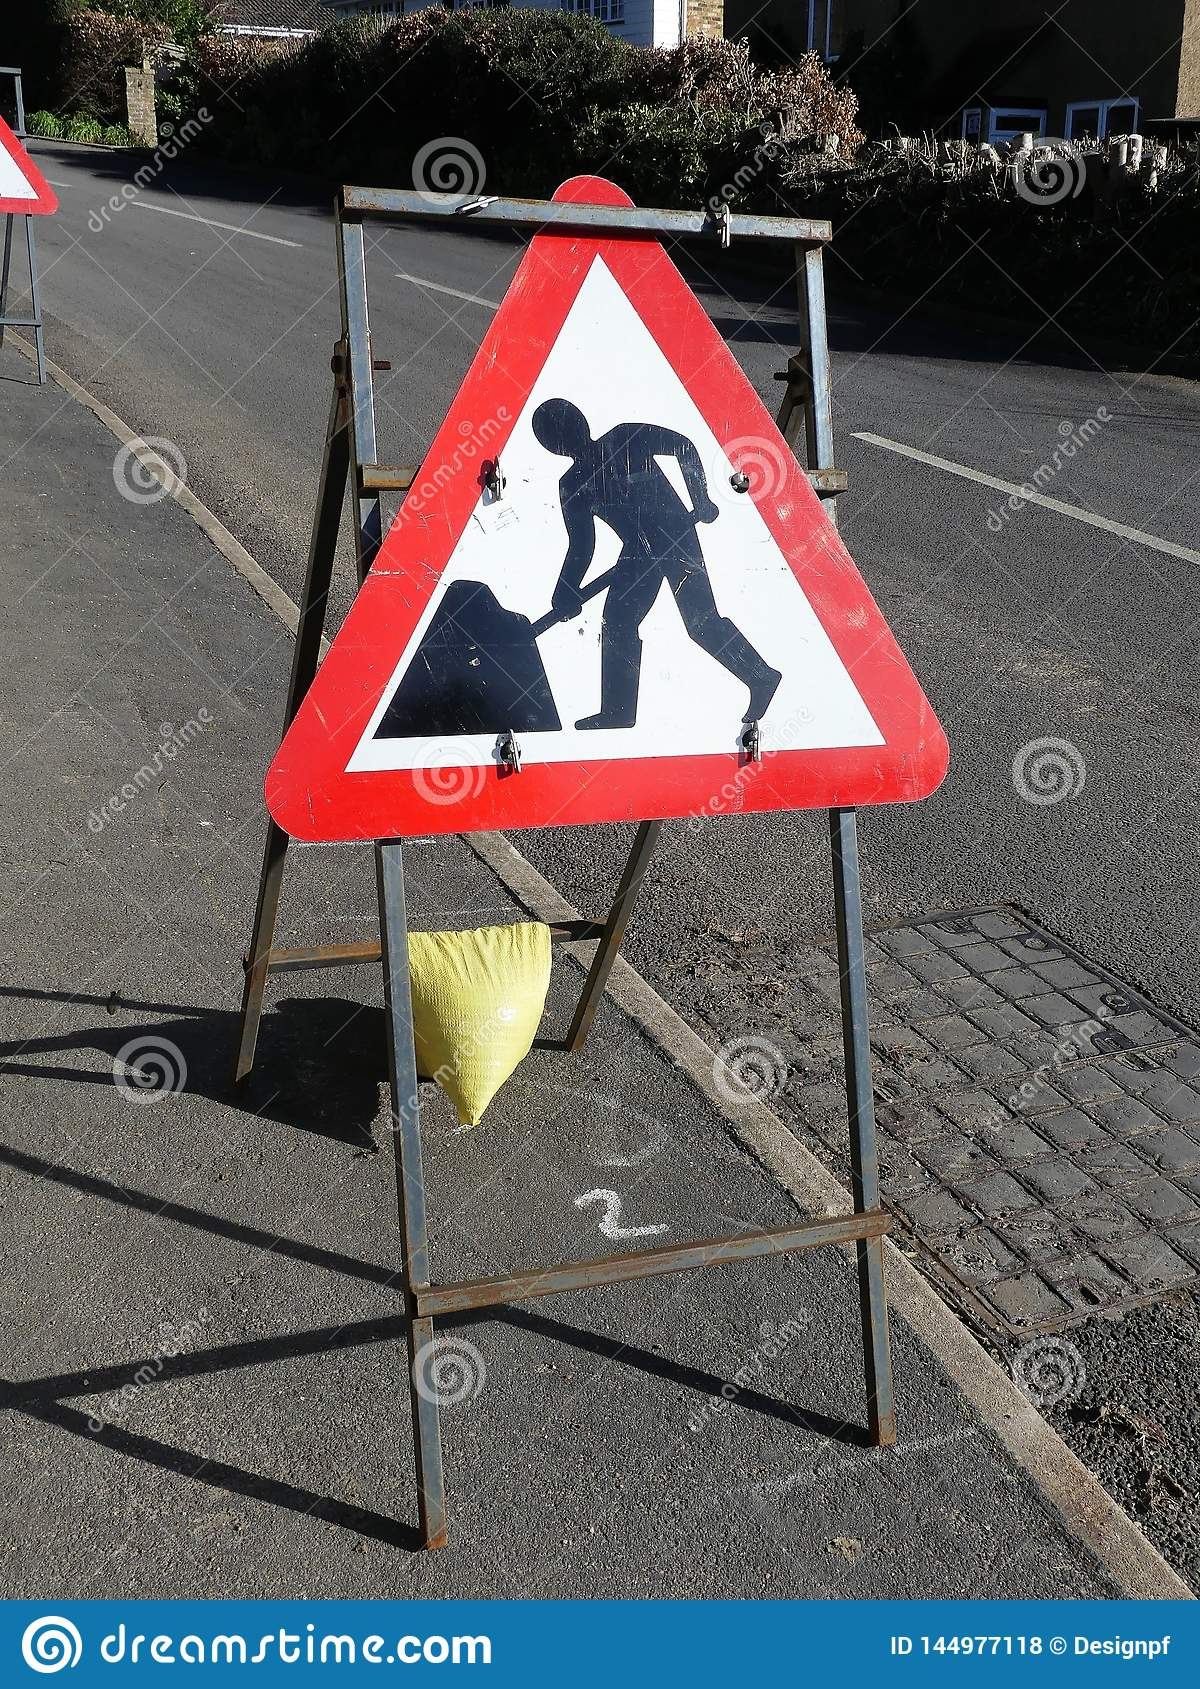 Triangular road works sign on metal frame by roadside